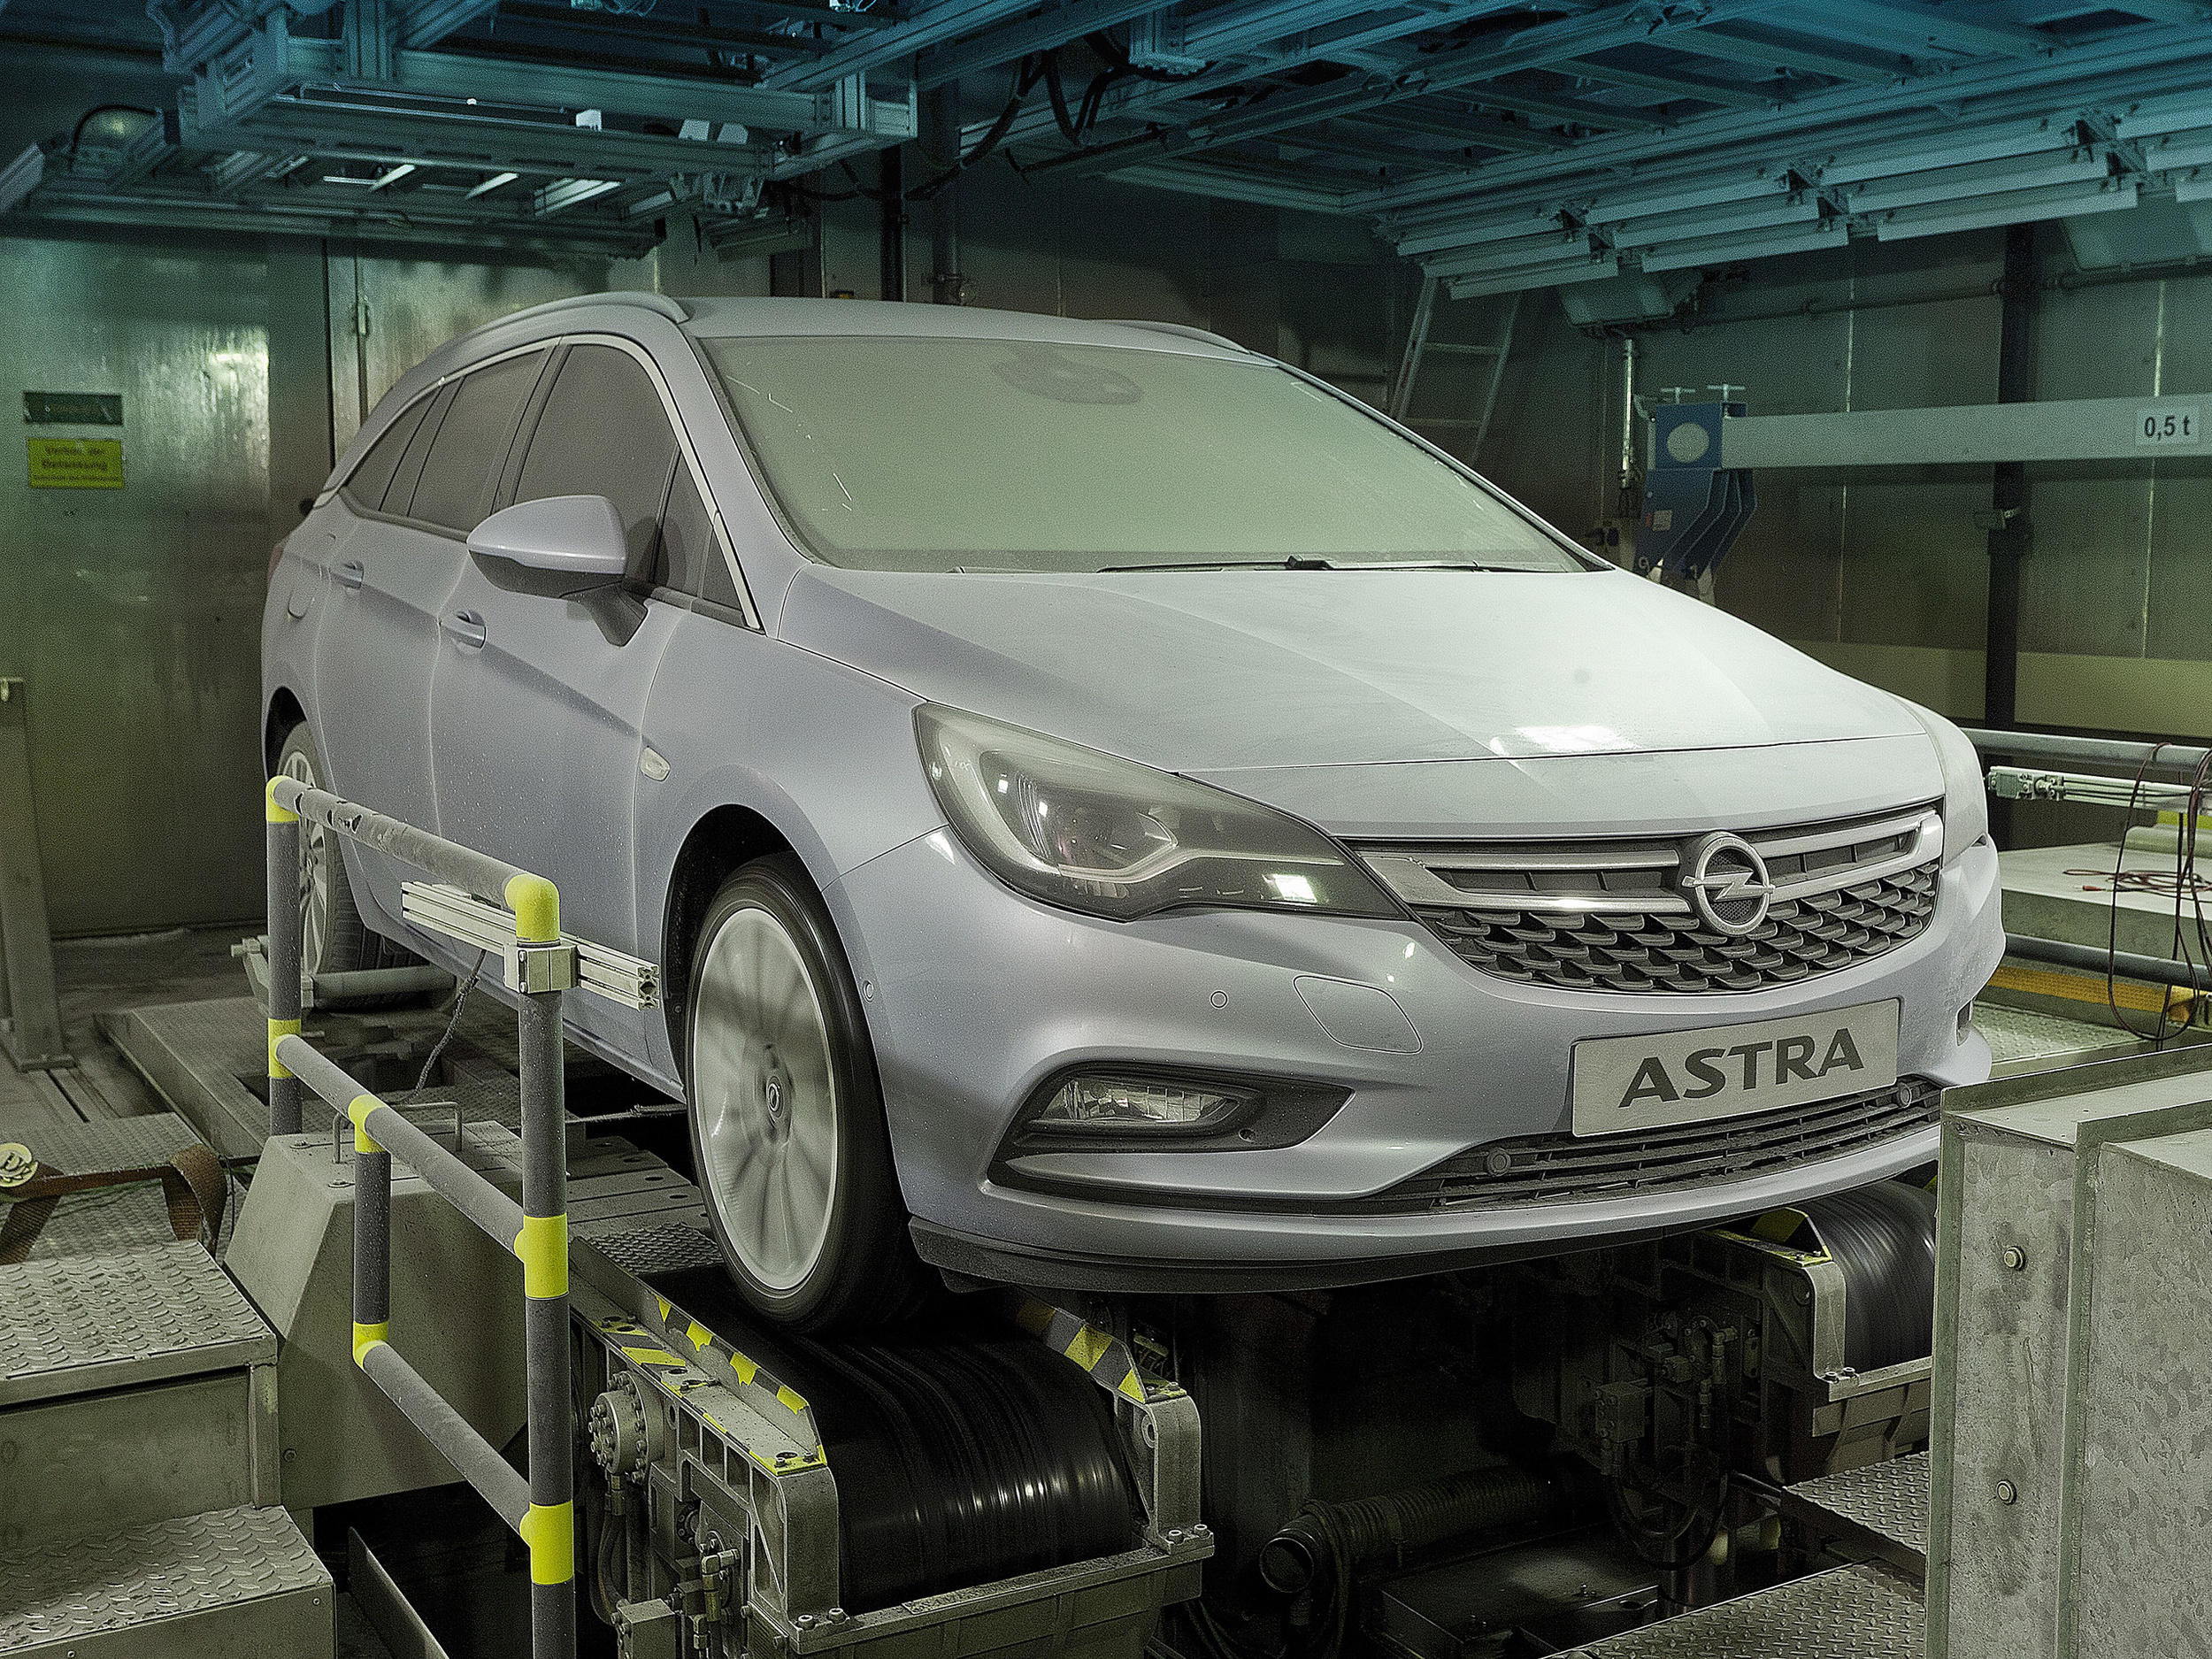 Opel-Astra-Sports-Tourer-Climatic-Test-Chamber-299046.jpg